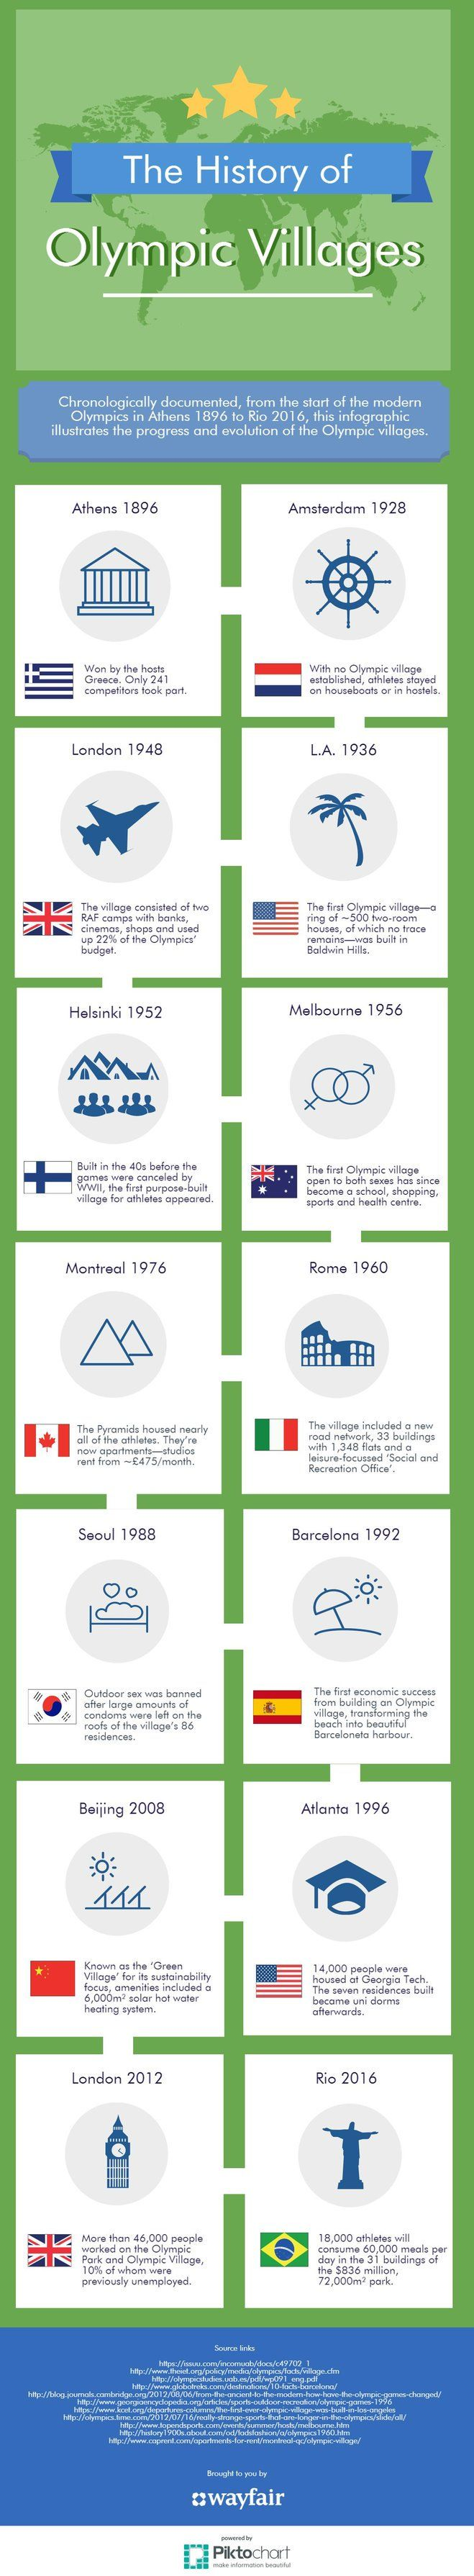 History of Olympic Villages